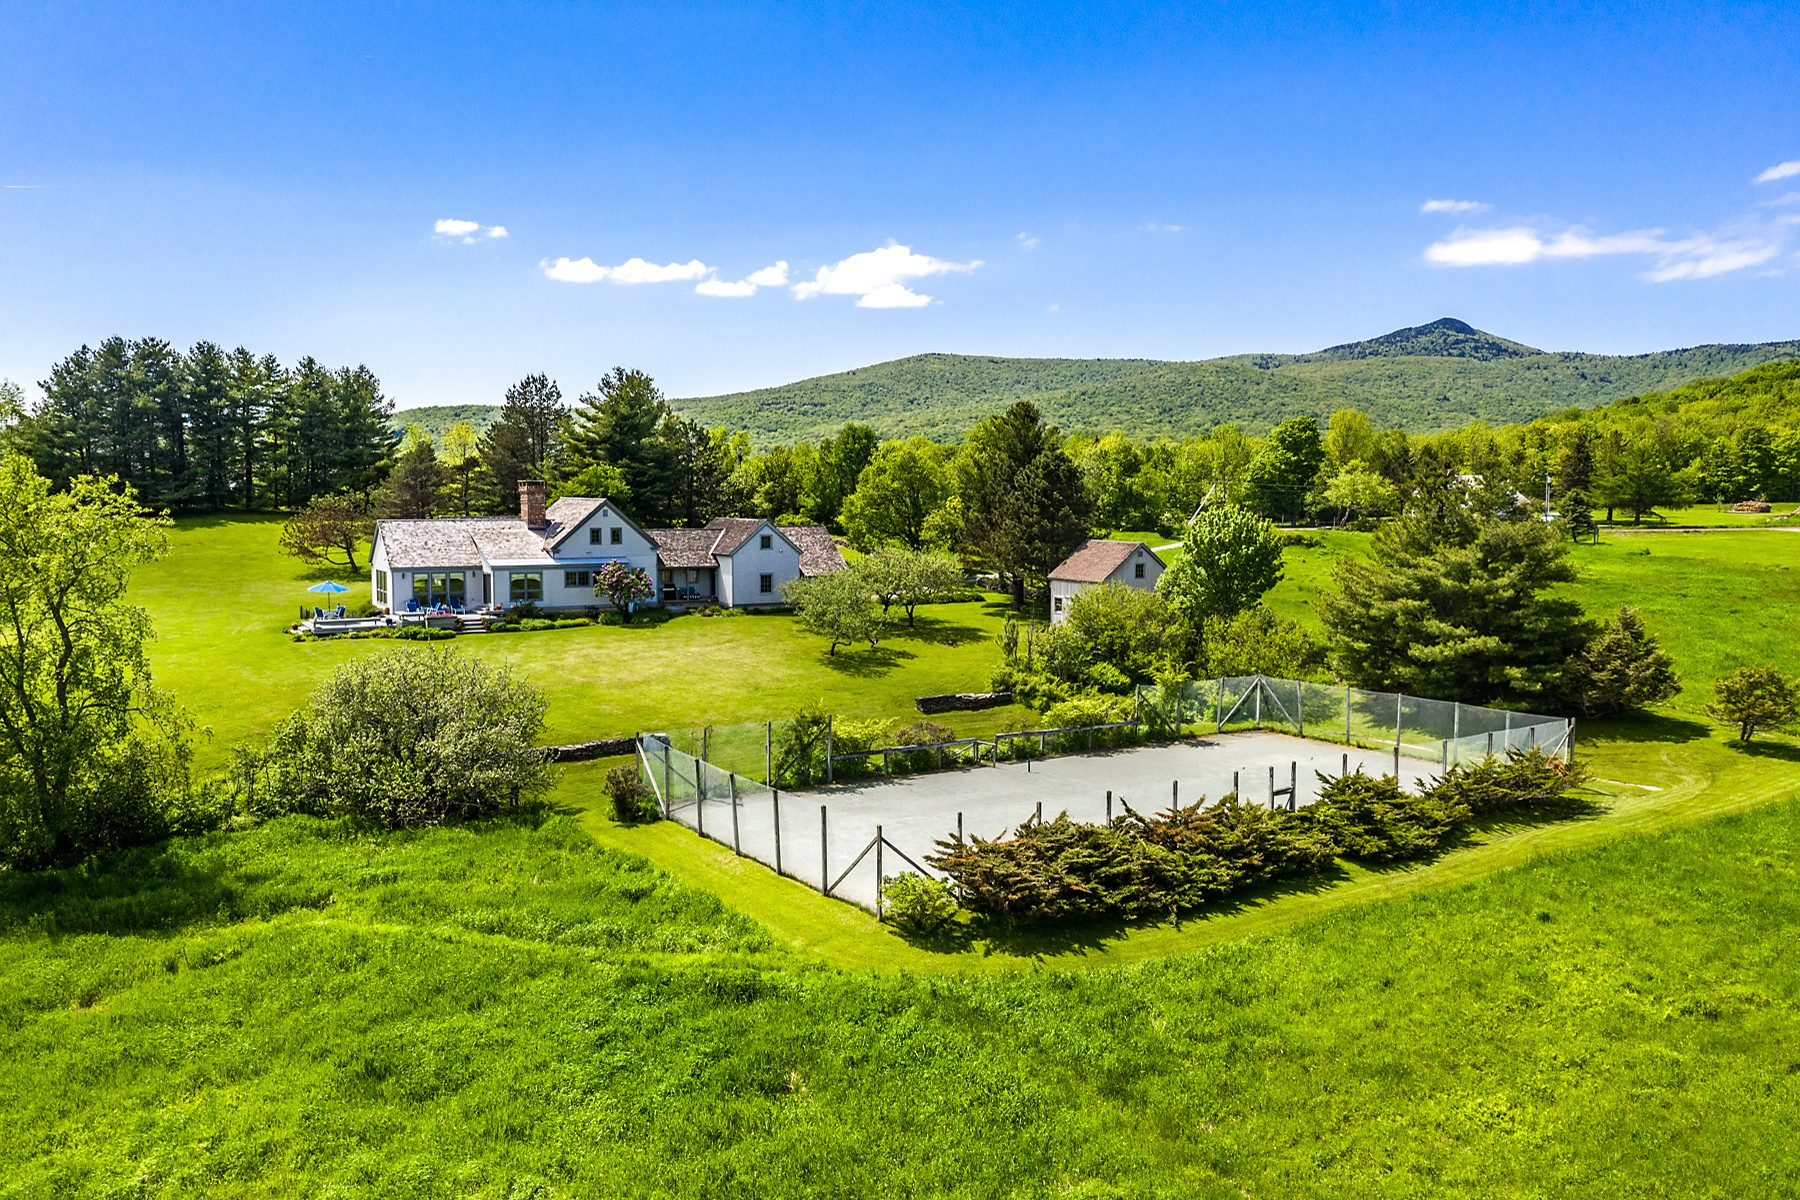 Single Family Homes for Sale at 21 Aldrich Road, Wilmington 21 Aldrich Rd Wilmington, Vermont 05363 United States